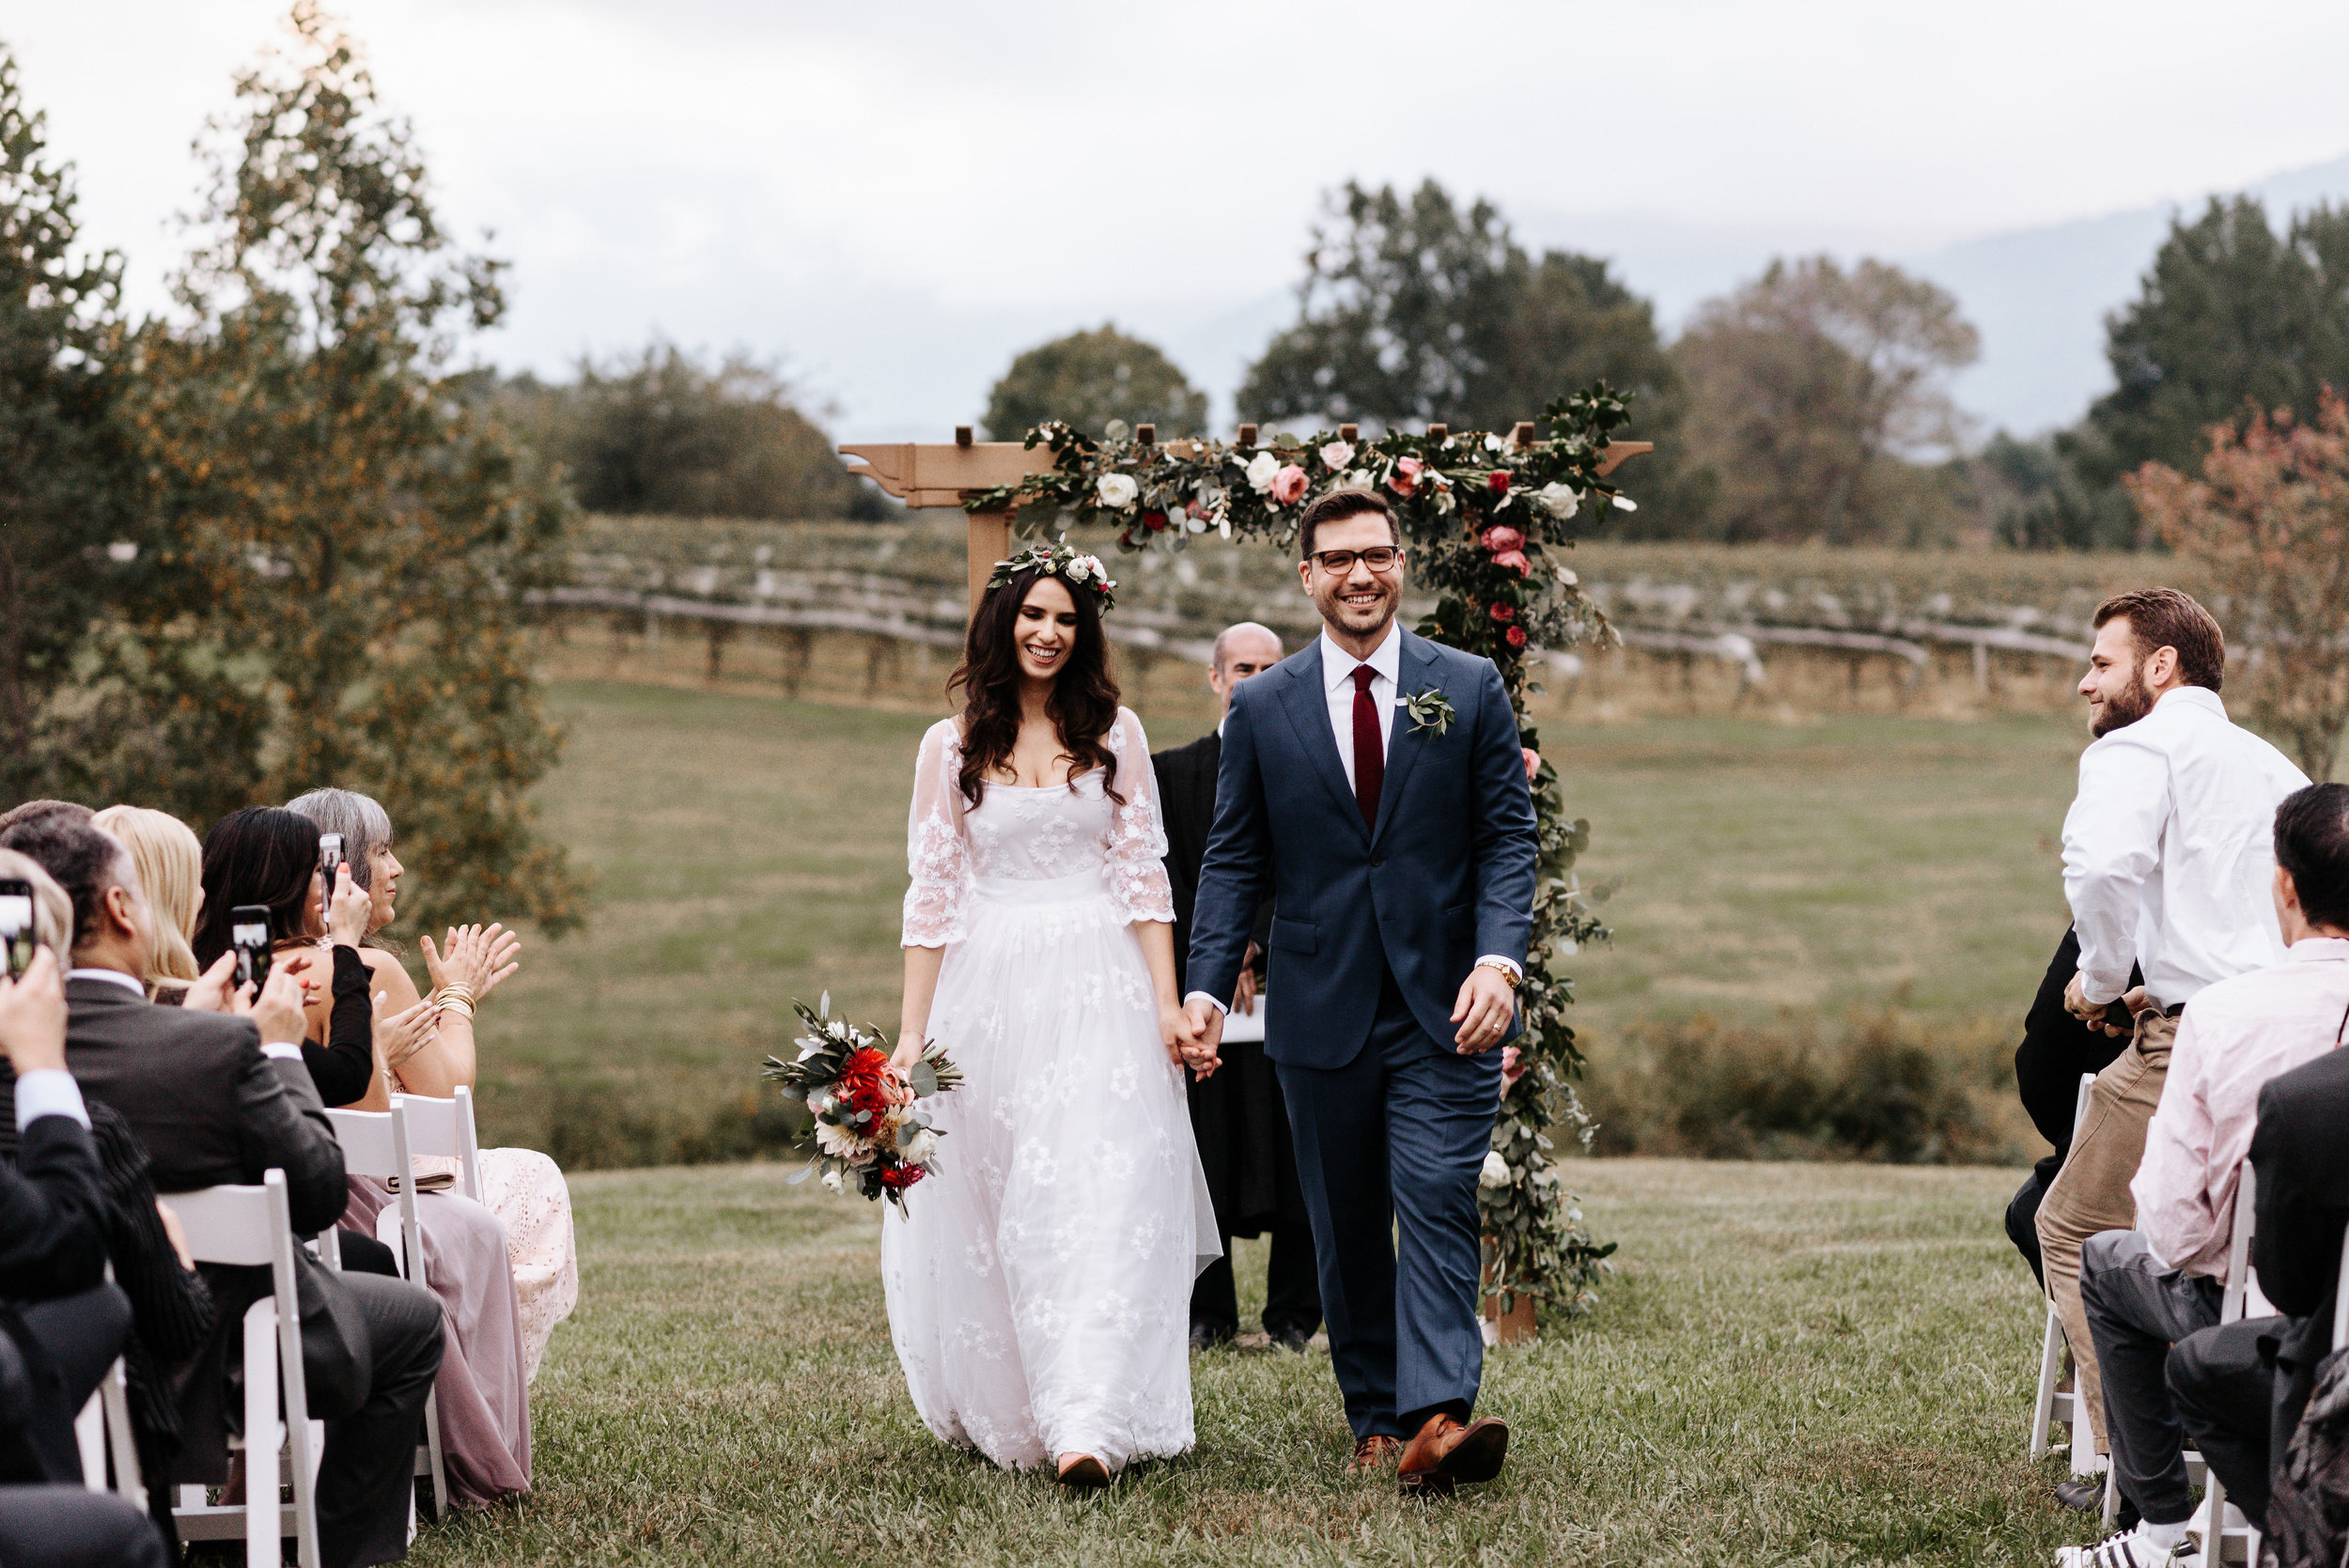 Yasmin_Seth_Wedding_Veritas_Vineyards_and_Winery_Charlottesville_Virginia_Romantic_Vintage_Unique_Wedding_Photography_by_V_2883.jpg